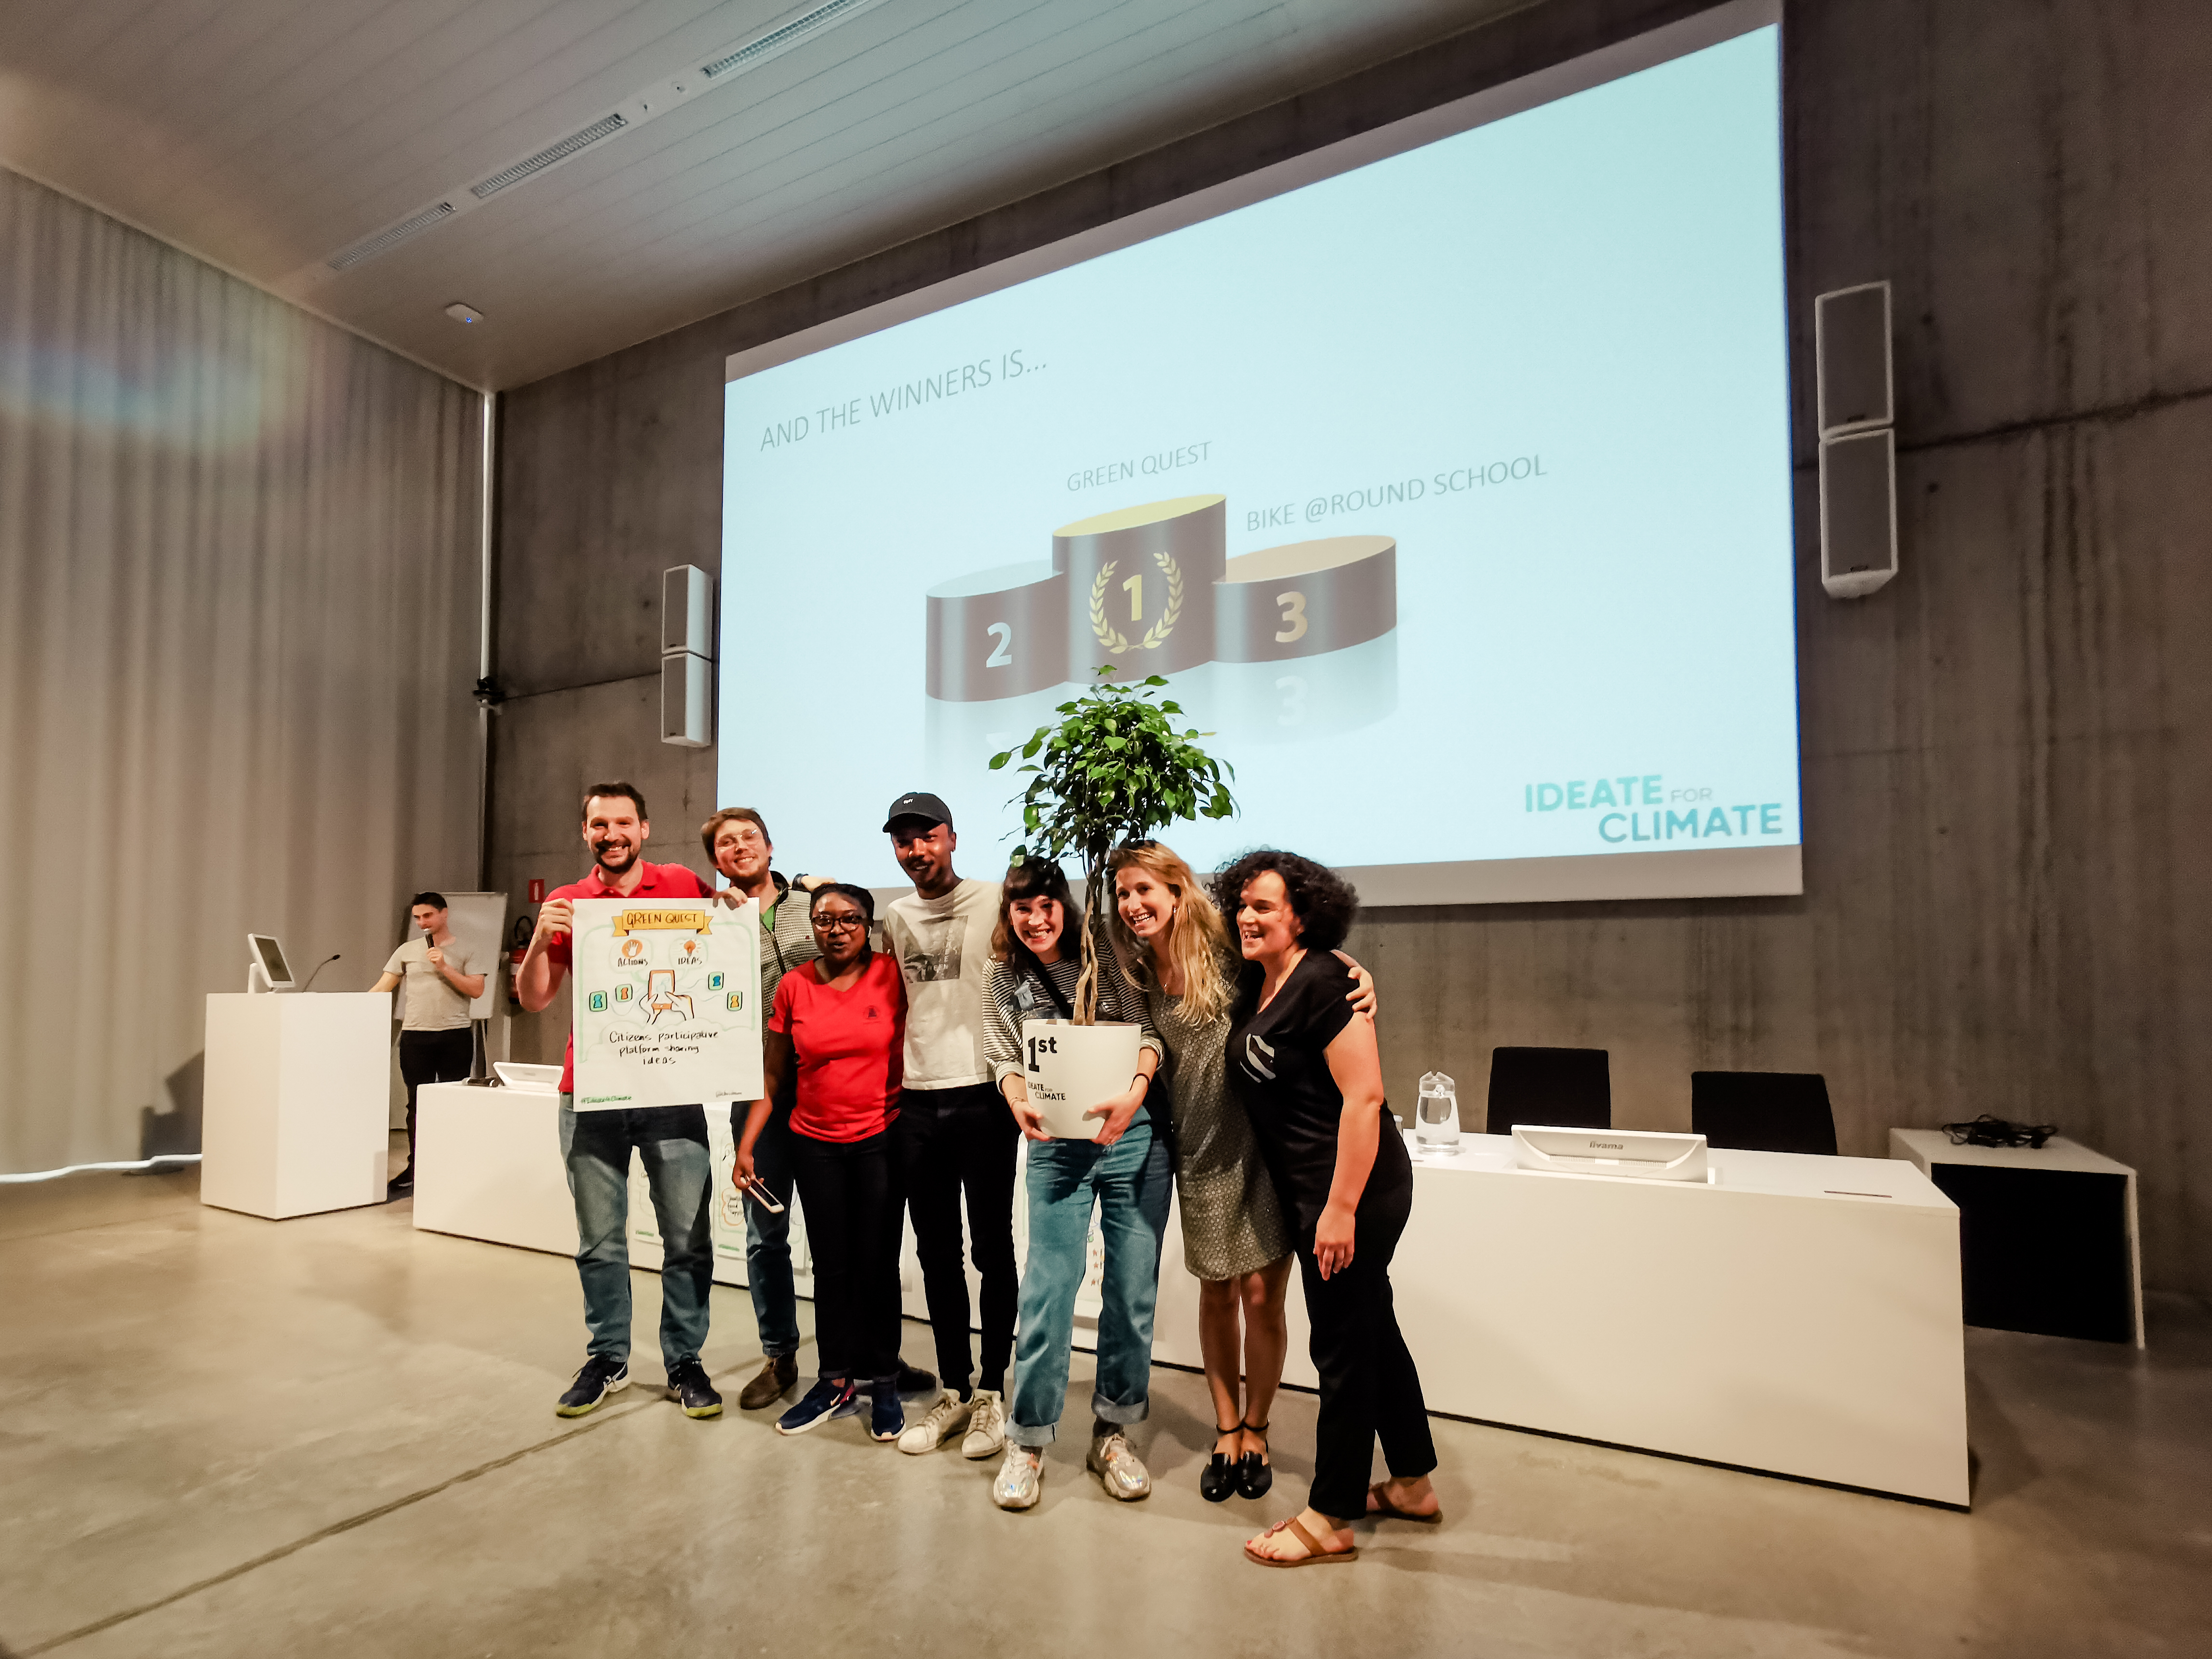 ideate for climate first prize